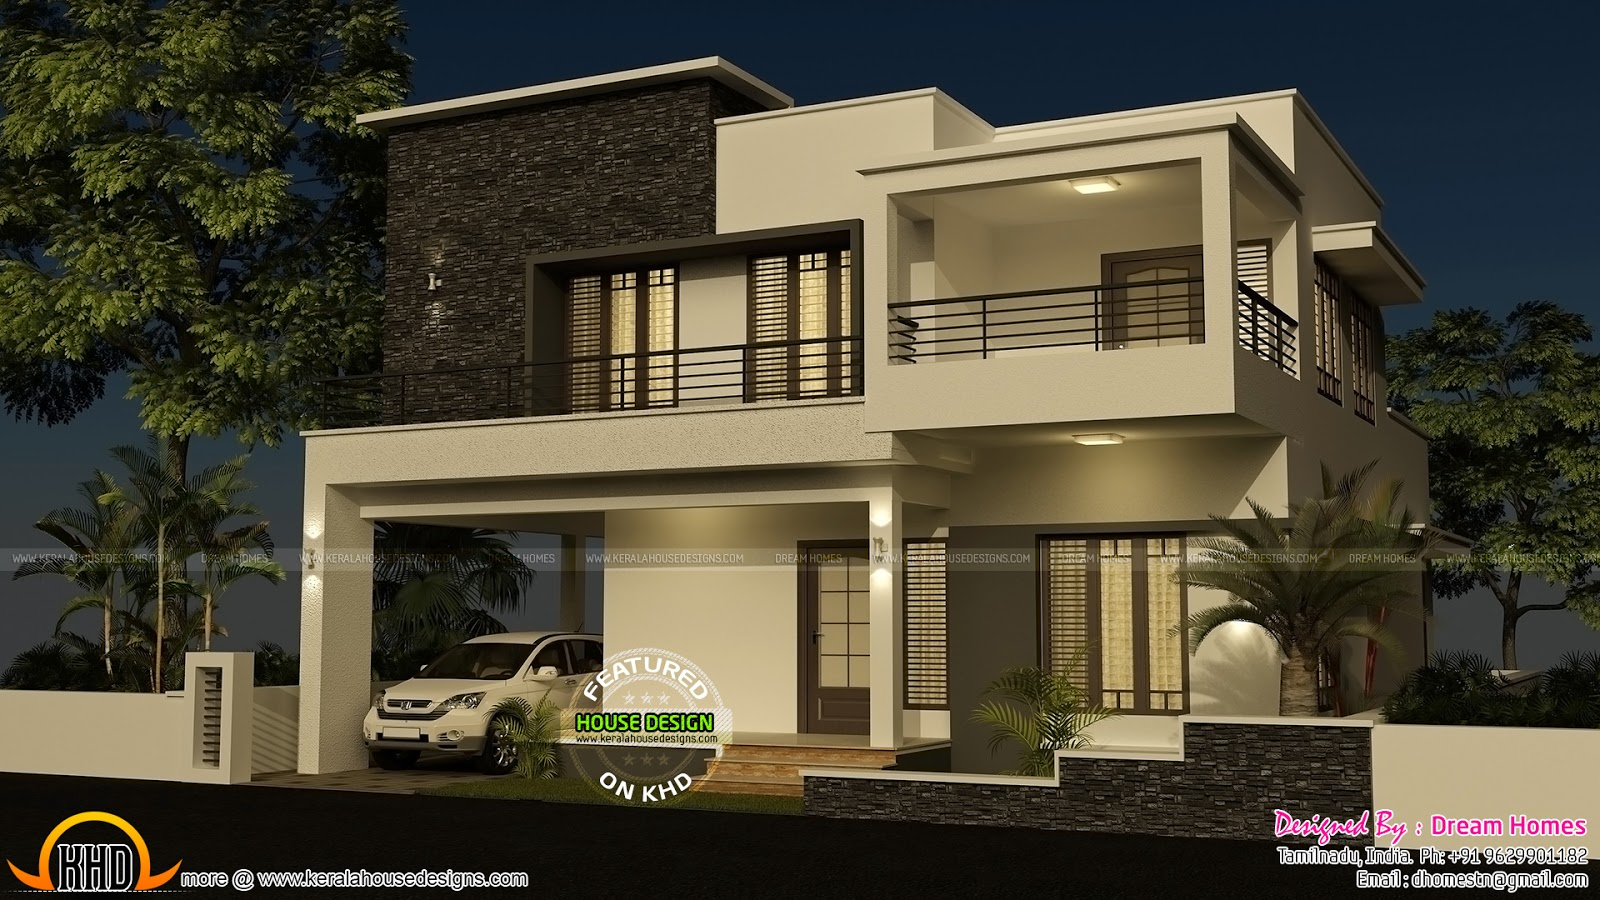 4 bedroom modern house with plan kerala home design and for Dreams by design planner